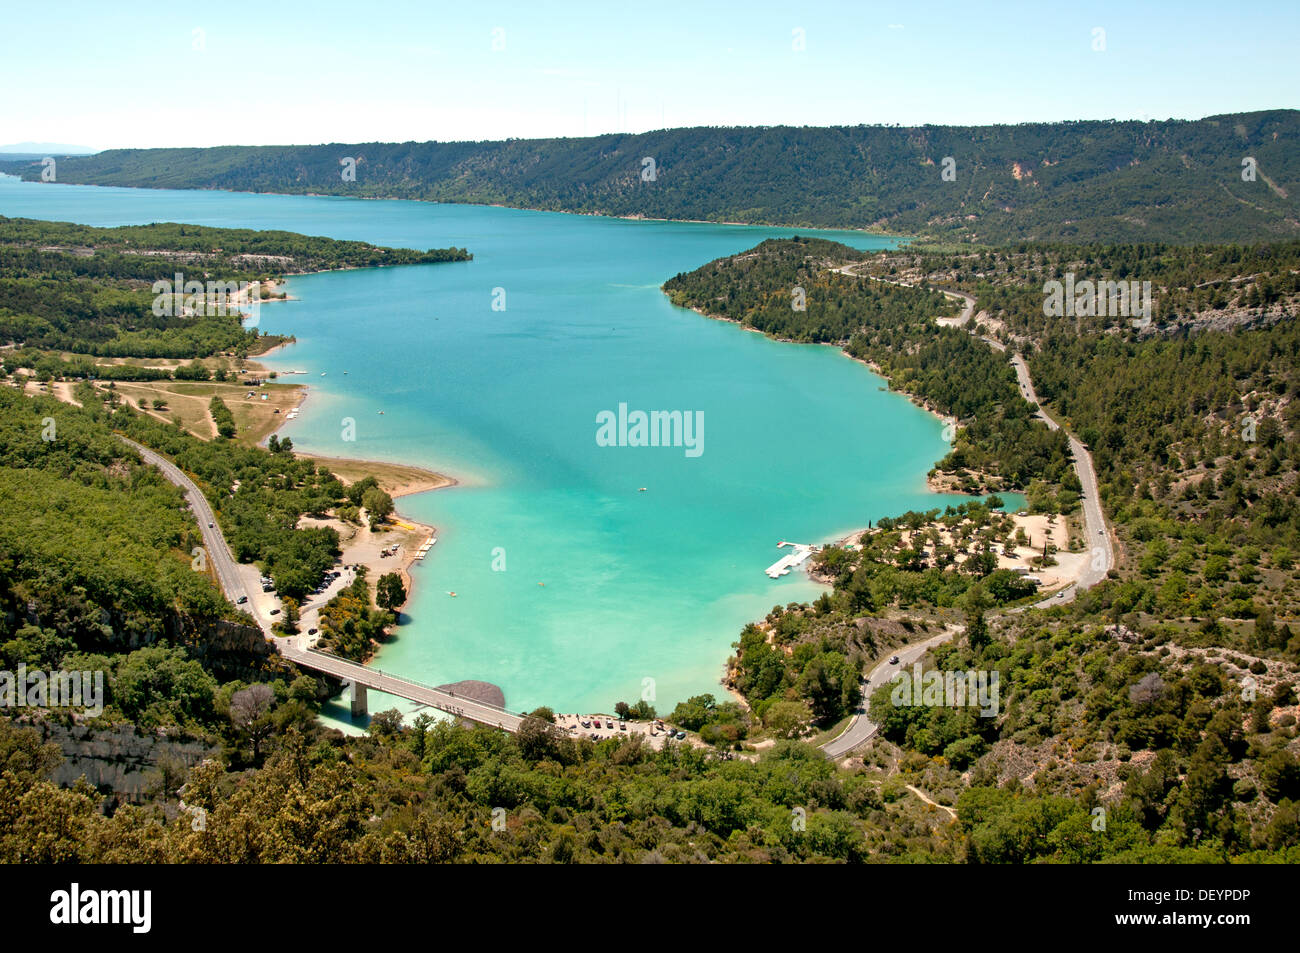 St croix lake les gorges du verdon provence france stock - Office du tourisme sainte croix du verdon ...